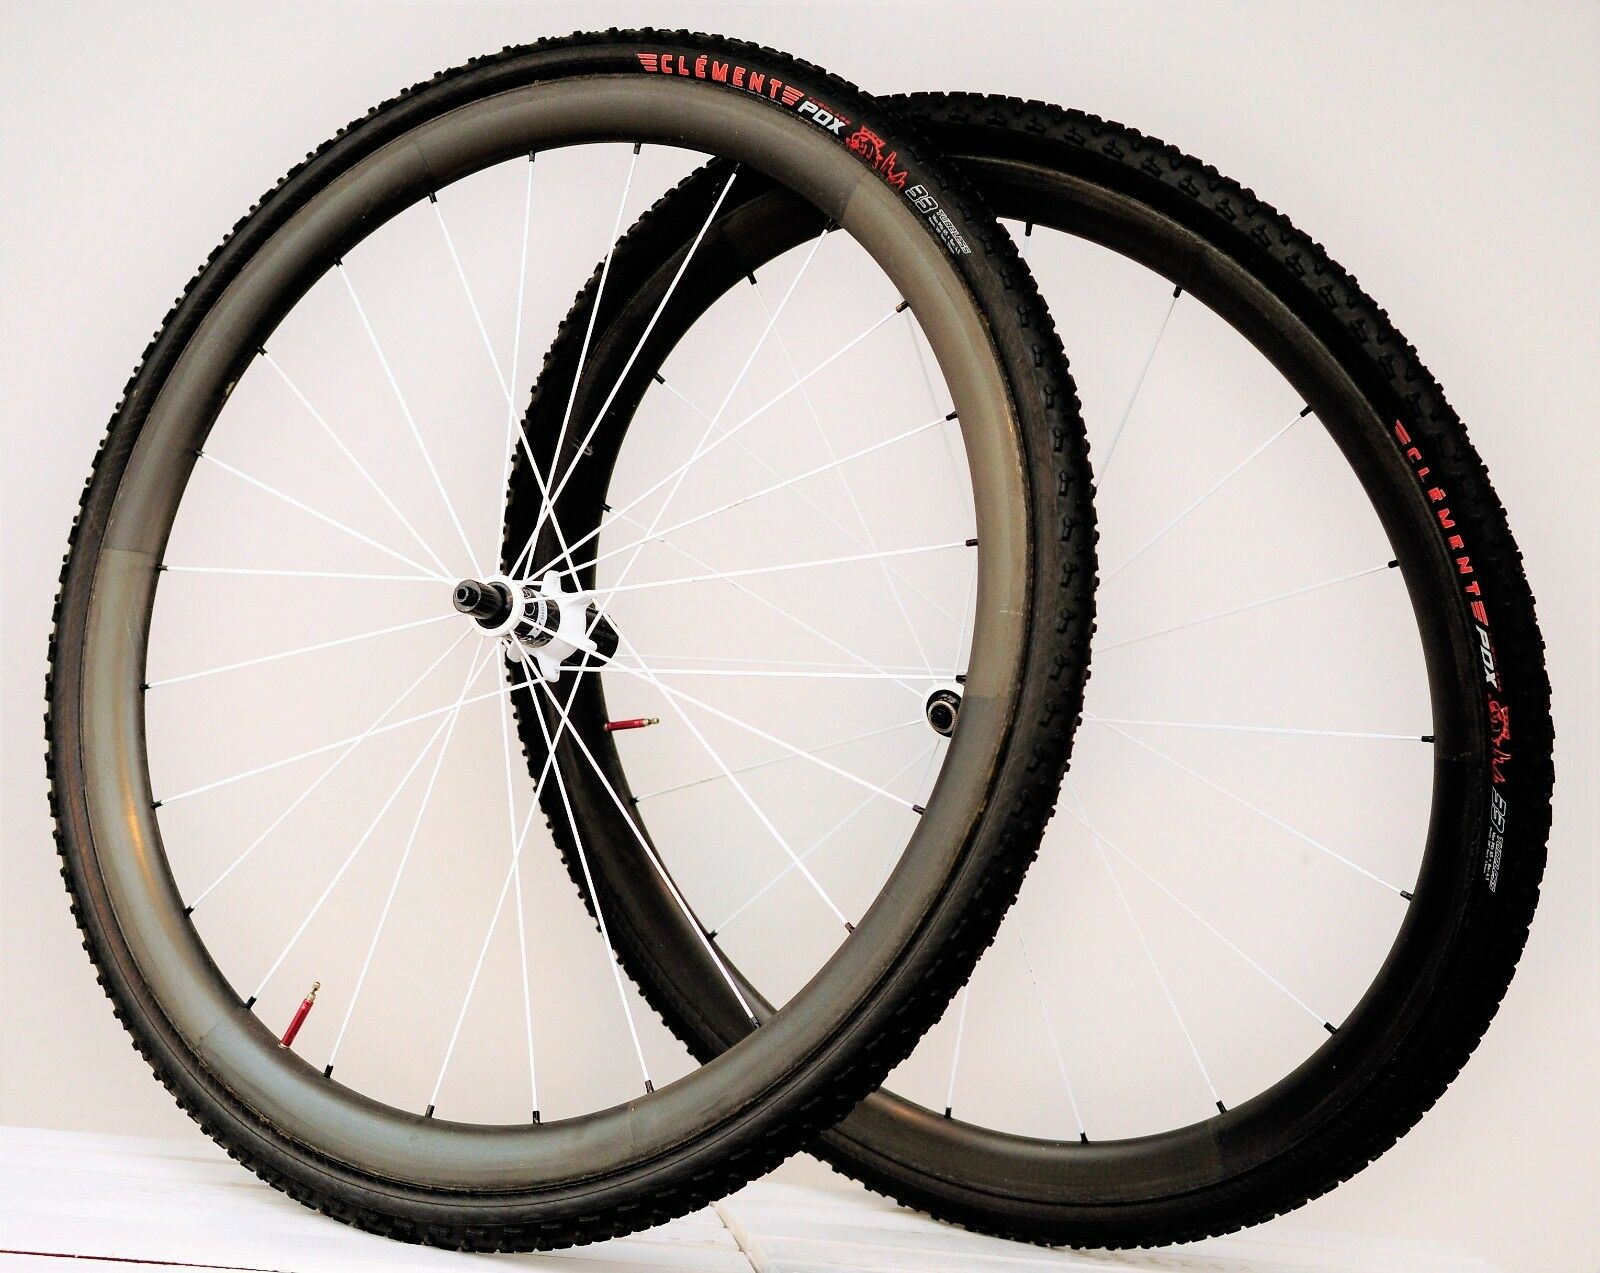 Bontrager Aeolus 3 Tubular Carbon Wheelset - 11-Speed Cyclocross Clement PDX